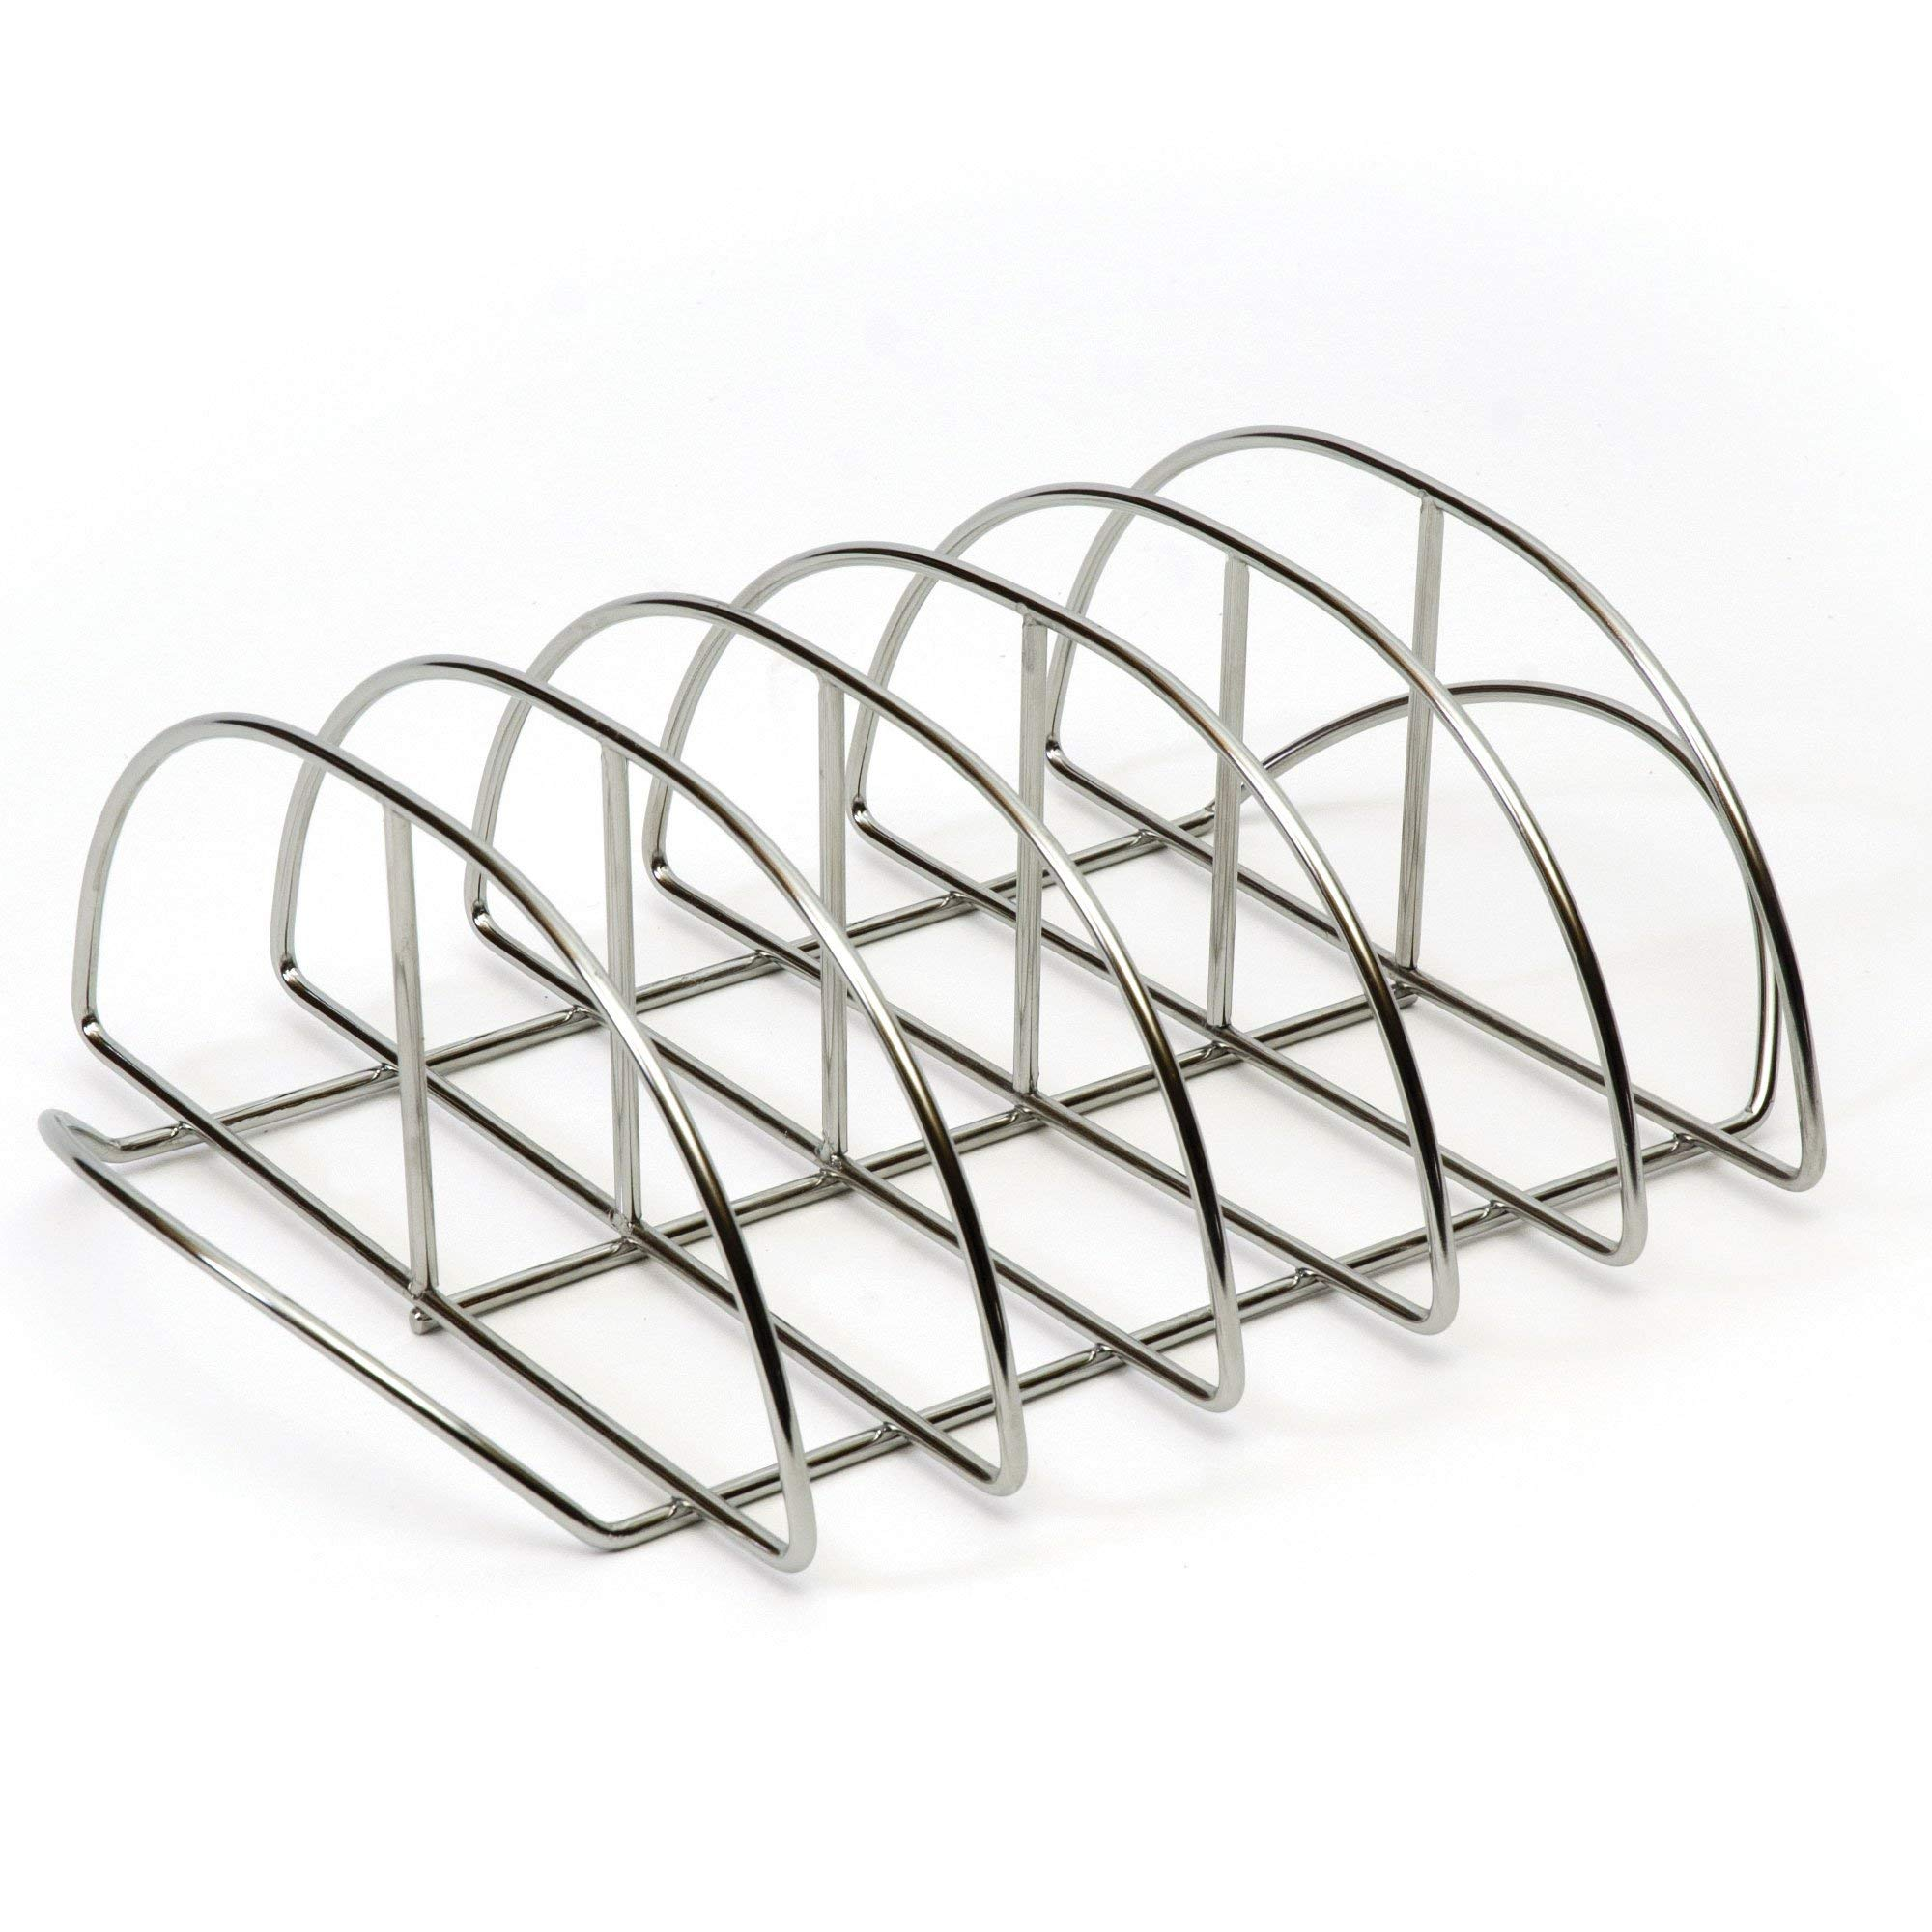 Kamado Joe KJ-RR Rib Rack, Stainless Steel by Kamado Joe